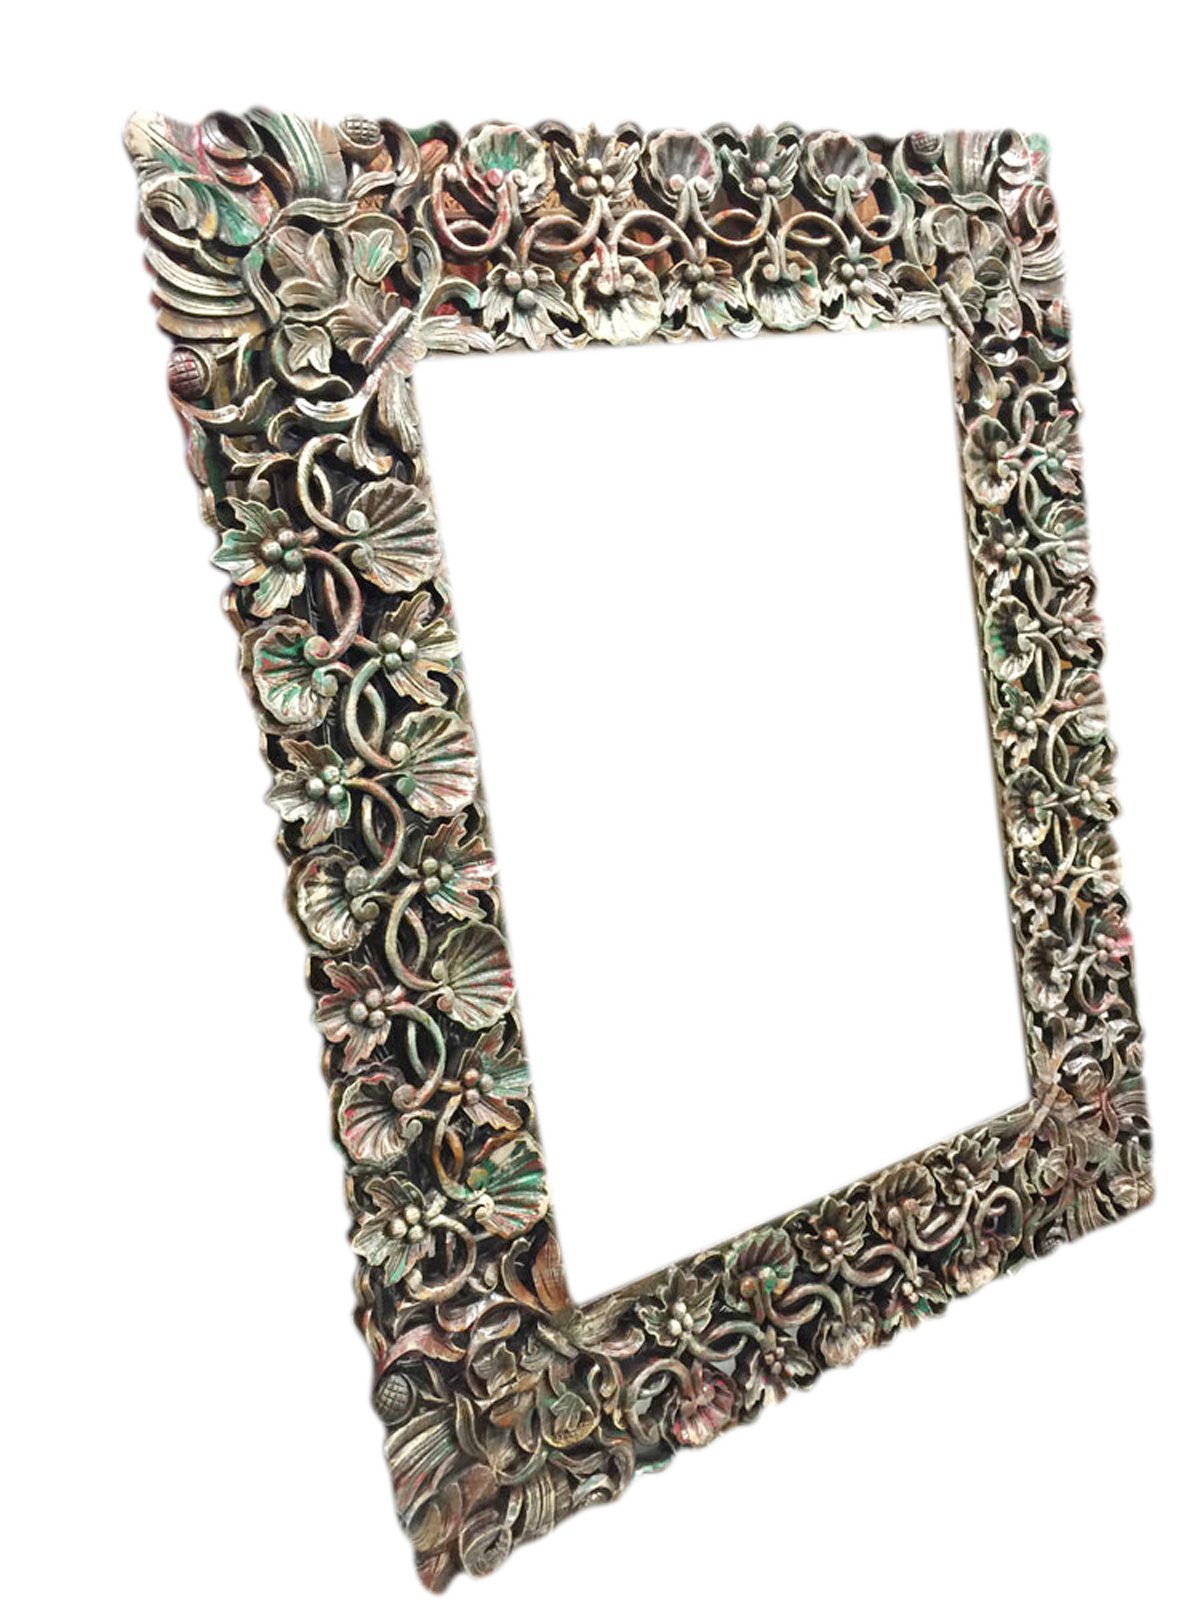 Antique miror Frame Hand Carved and Hand painted , Cherry Leaf Clusters, wall hanging Frame by Mogul Interior (Image #1)